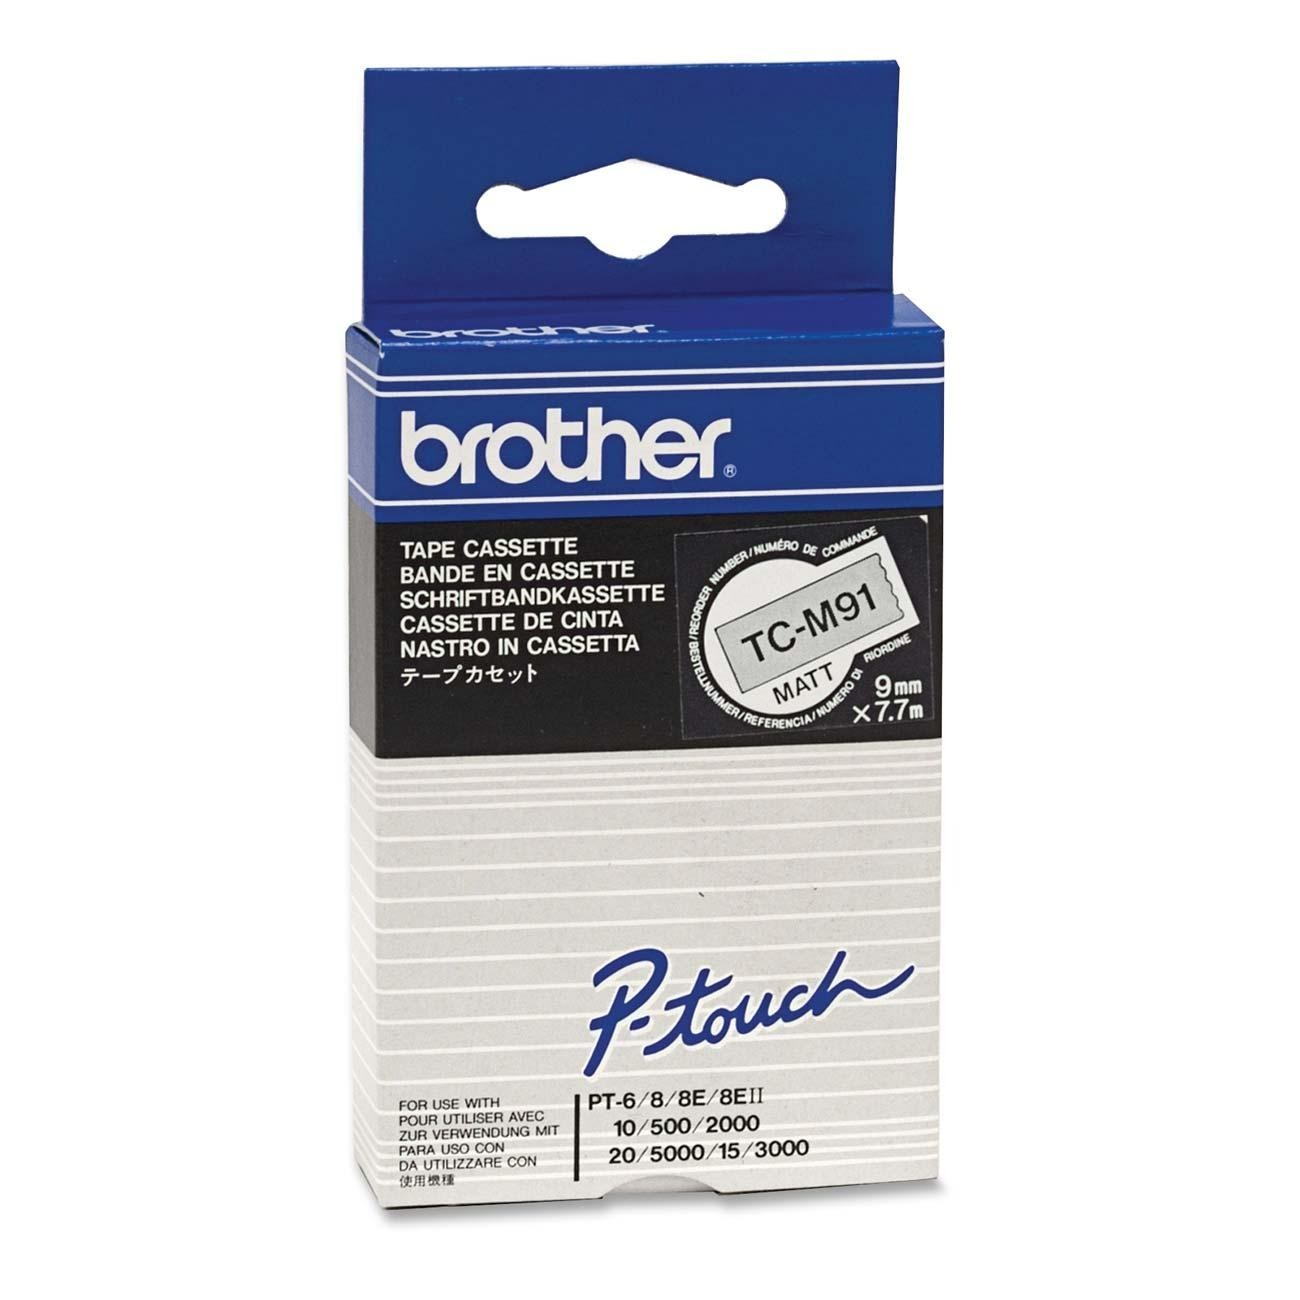 Banda Originala Laminata Etichete Brother TCM91, 9mm x 5m